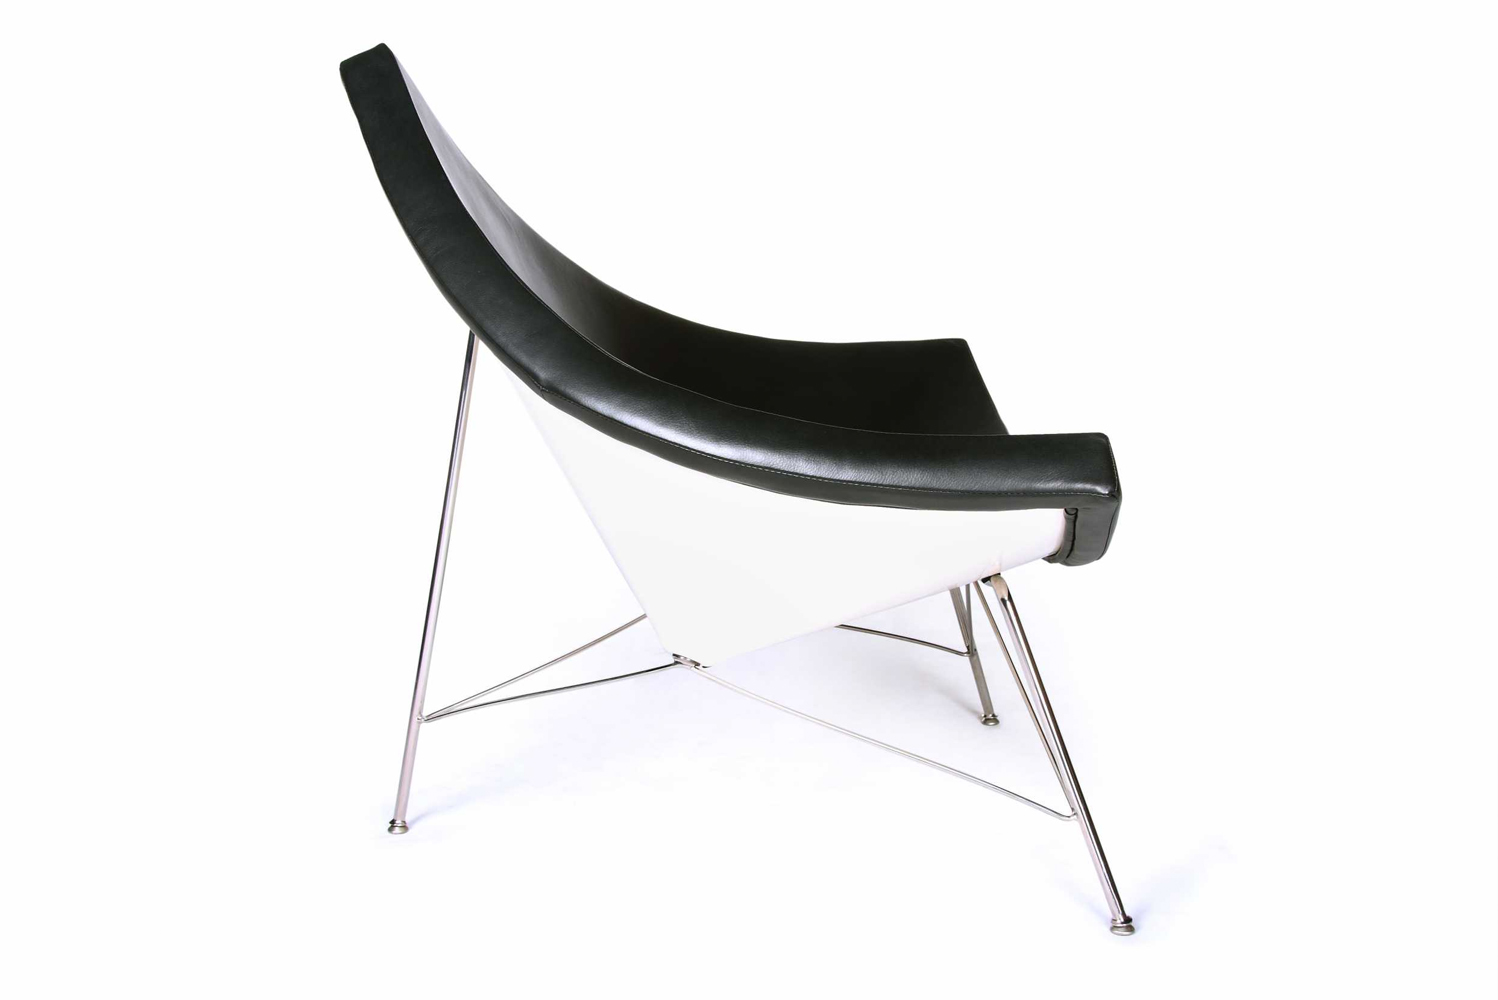 Rove Concepts announced the Coconut chair.